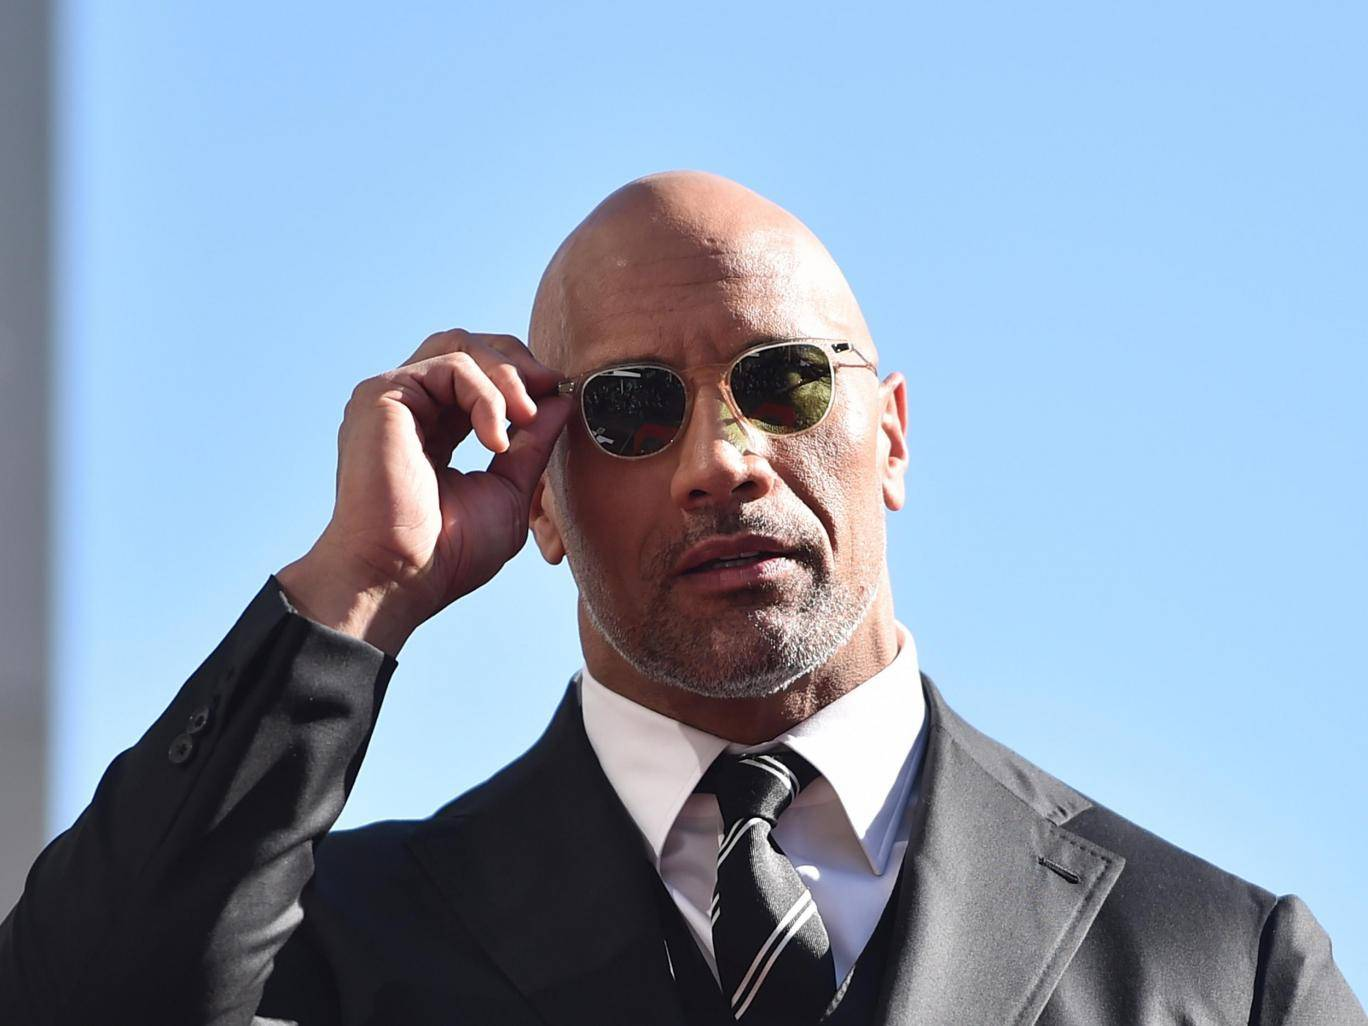 'The Rock' opens up about battling the beast – Depression